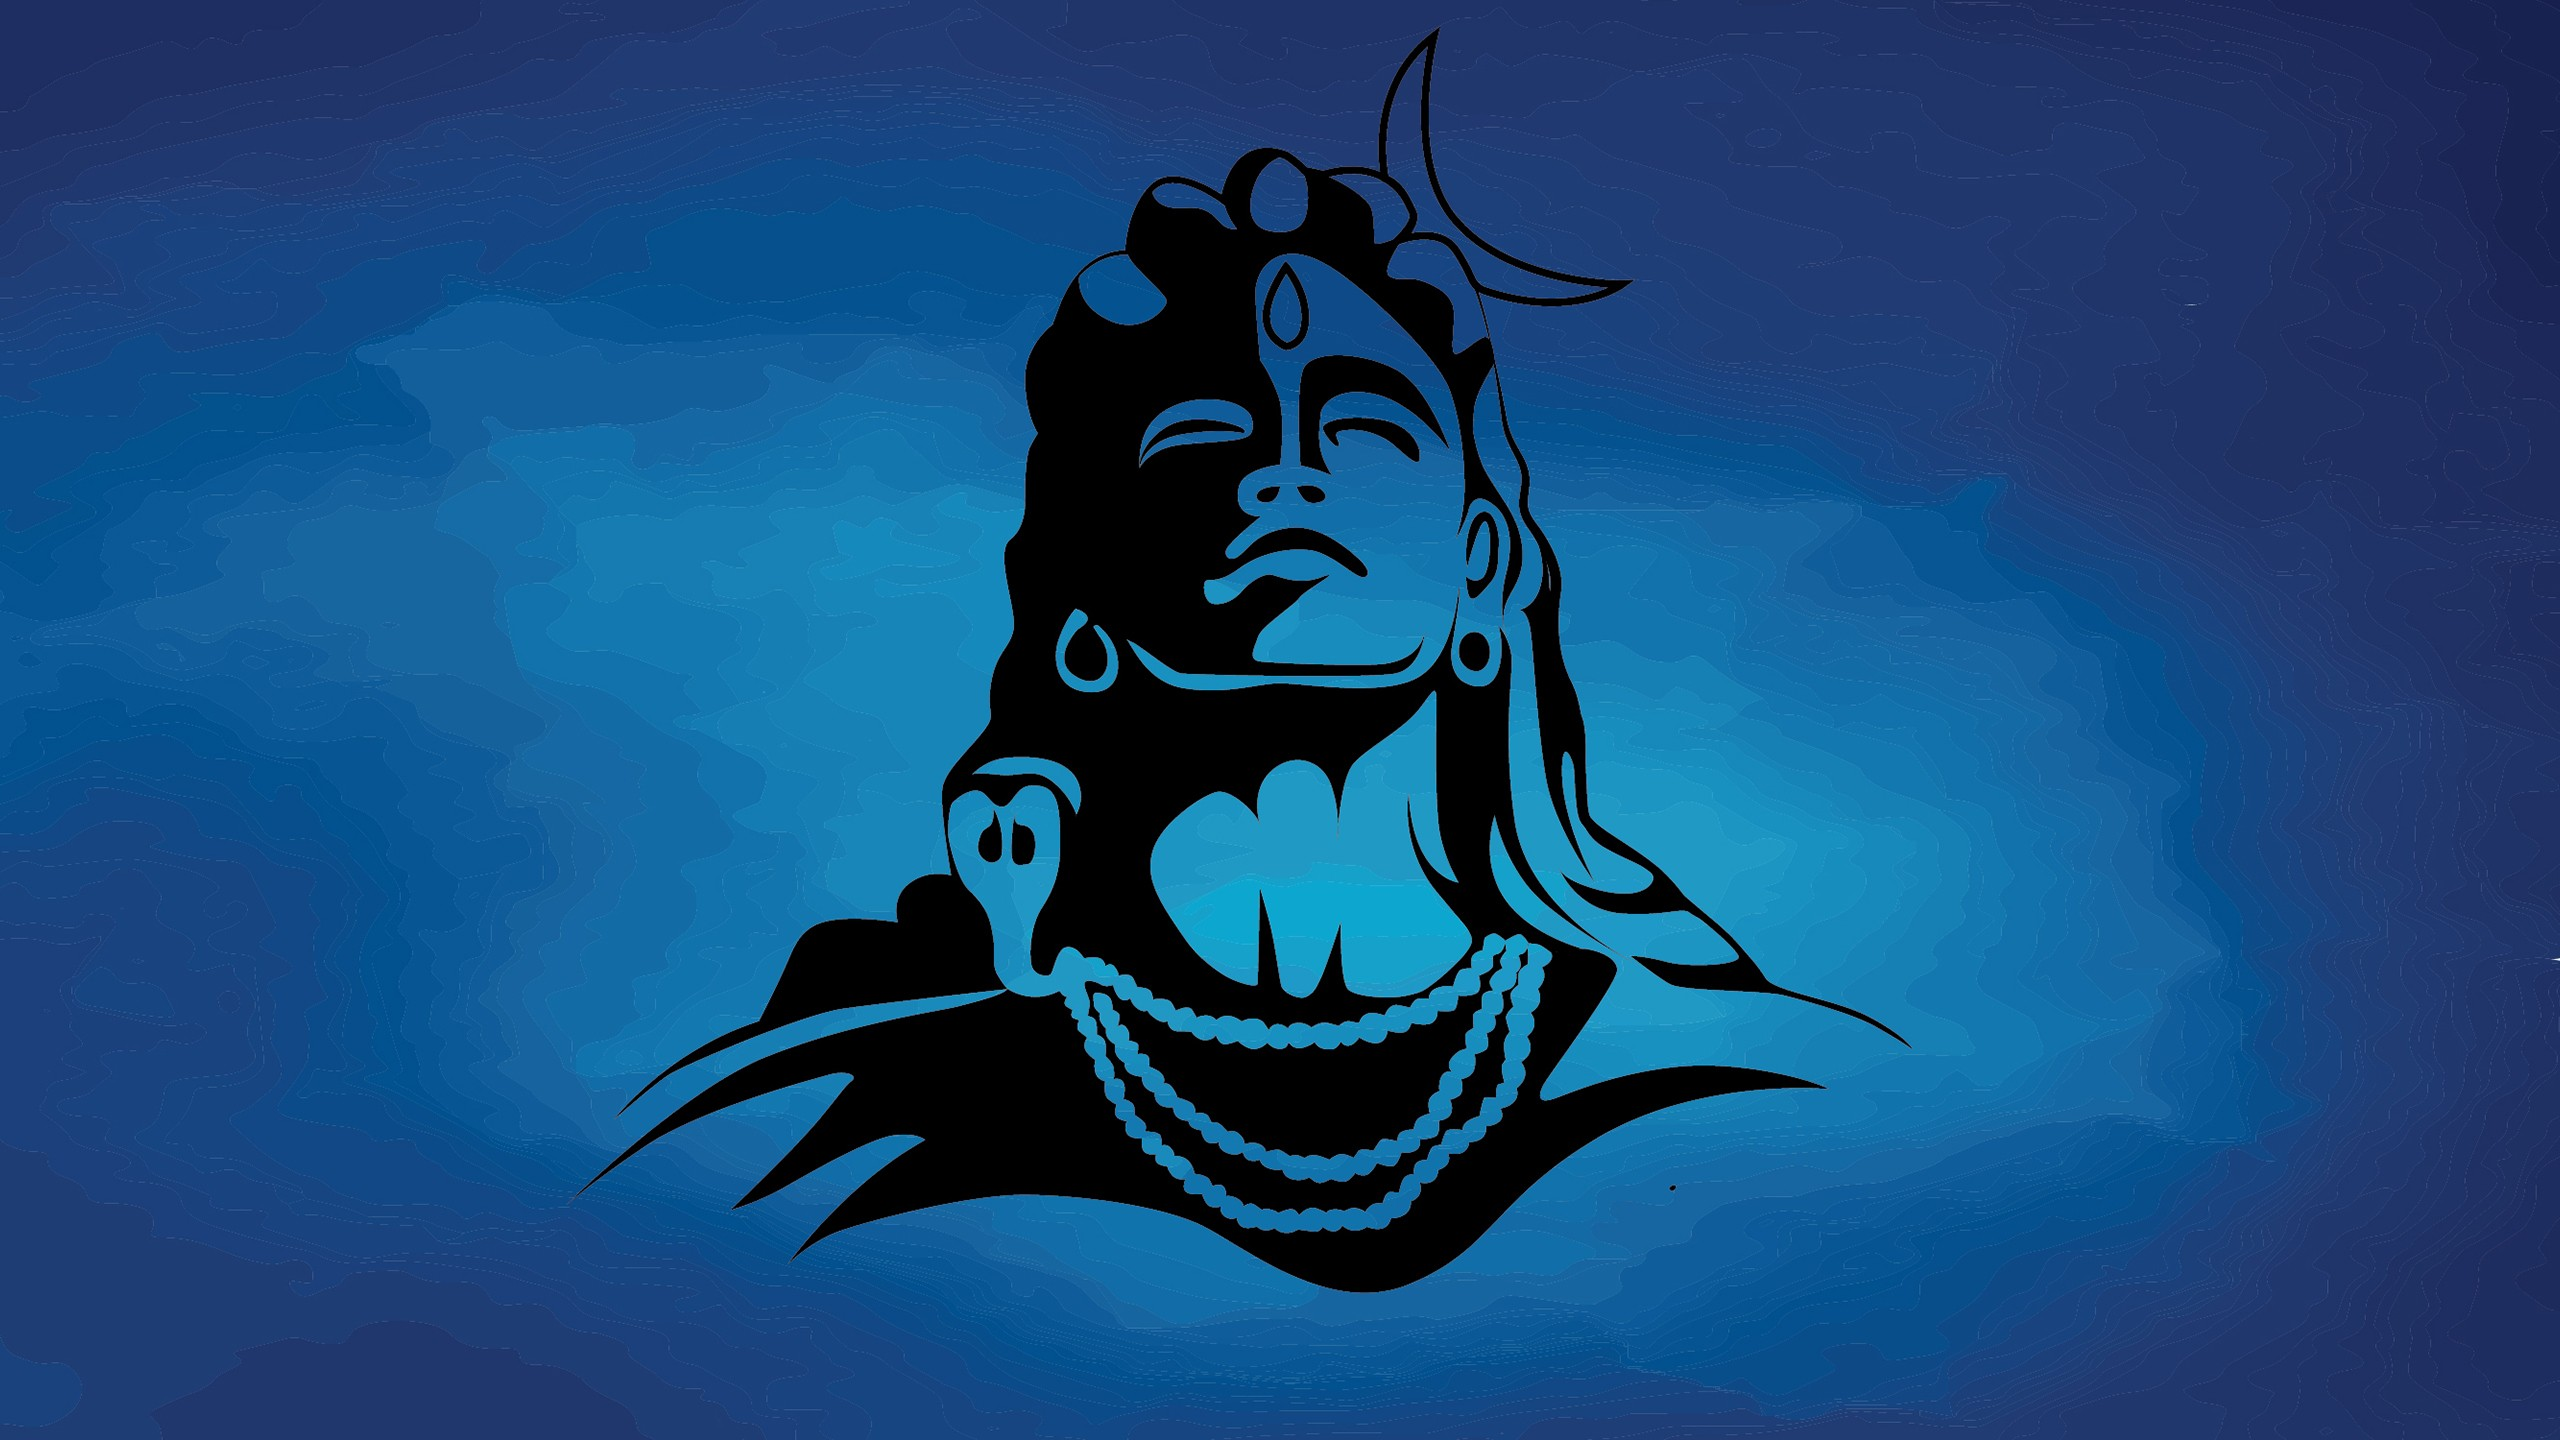 Lord Shiva Wallpapers  HD Wallpapers